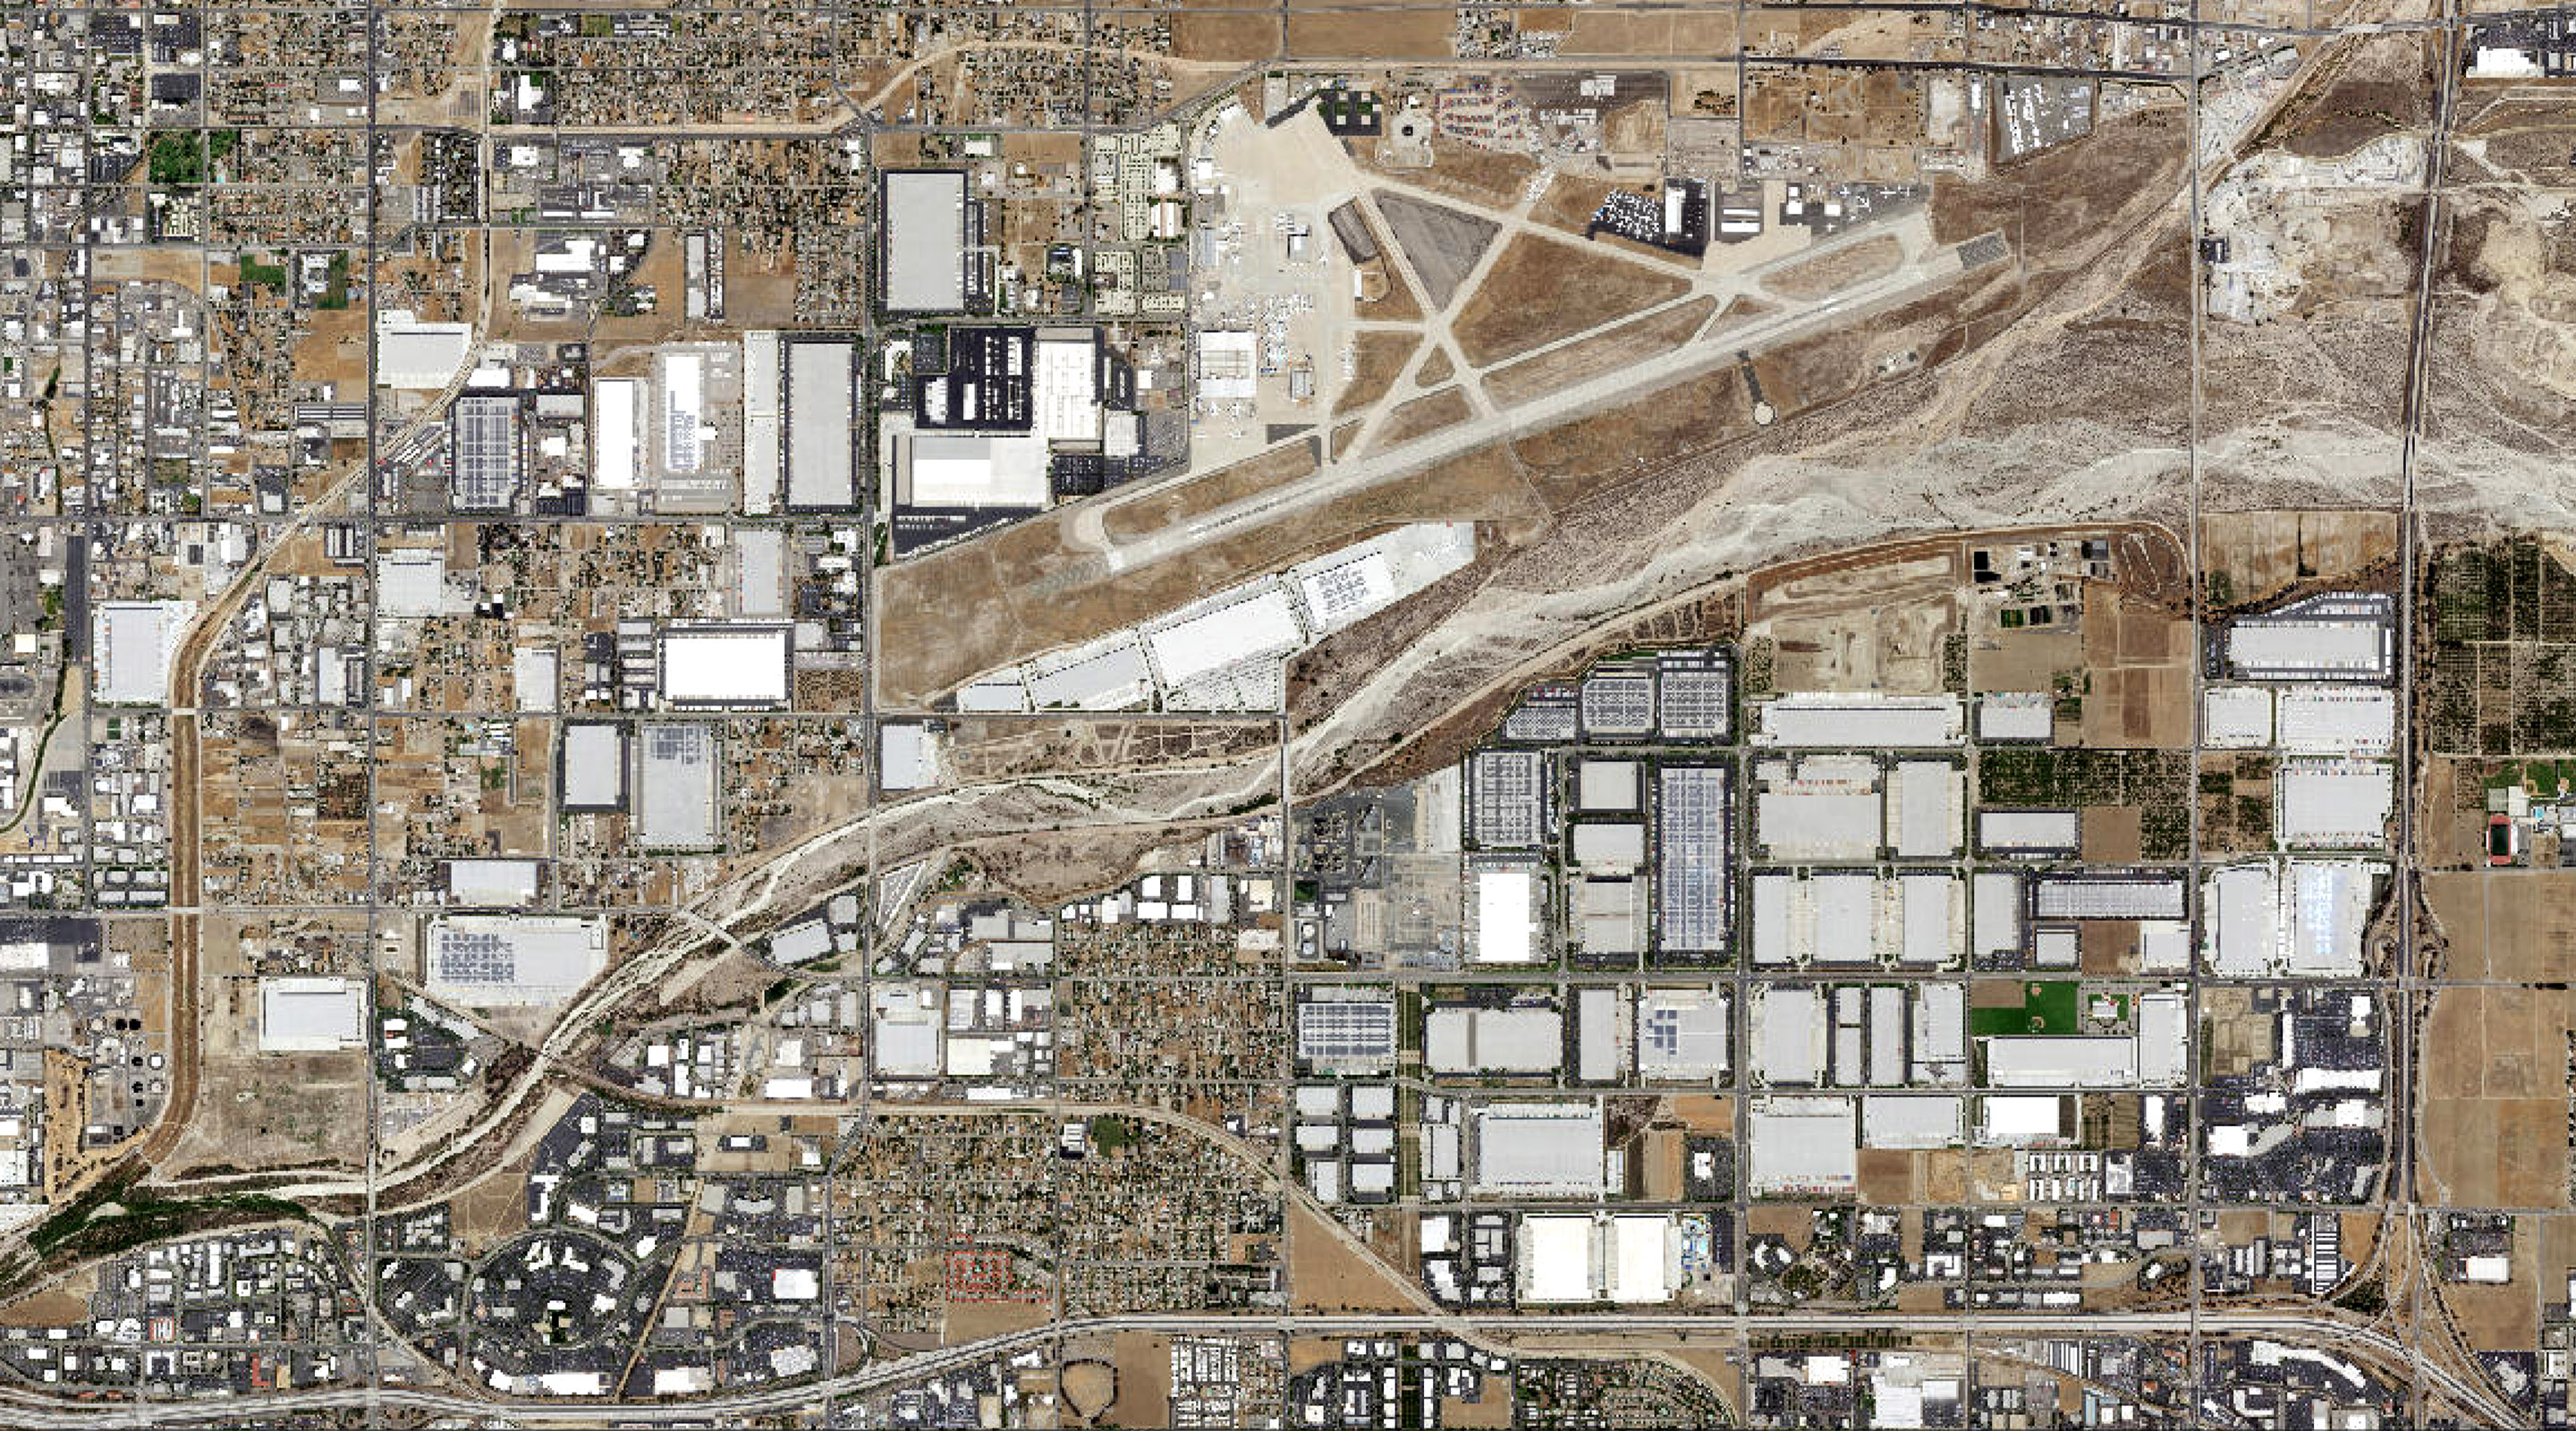 Satellite imagery shows the explosive growth of warehouses surrounding the San Bernardino International Airport between 2005 and 2018